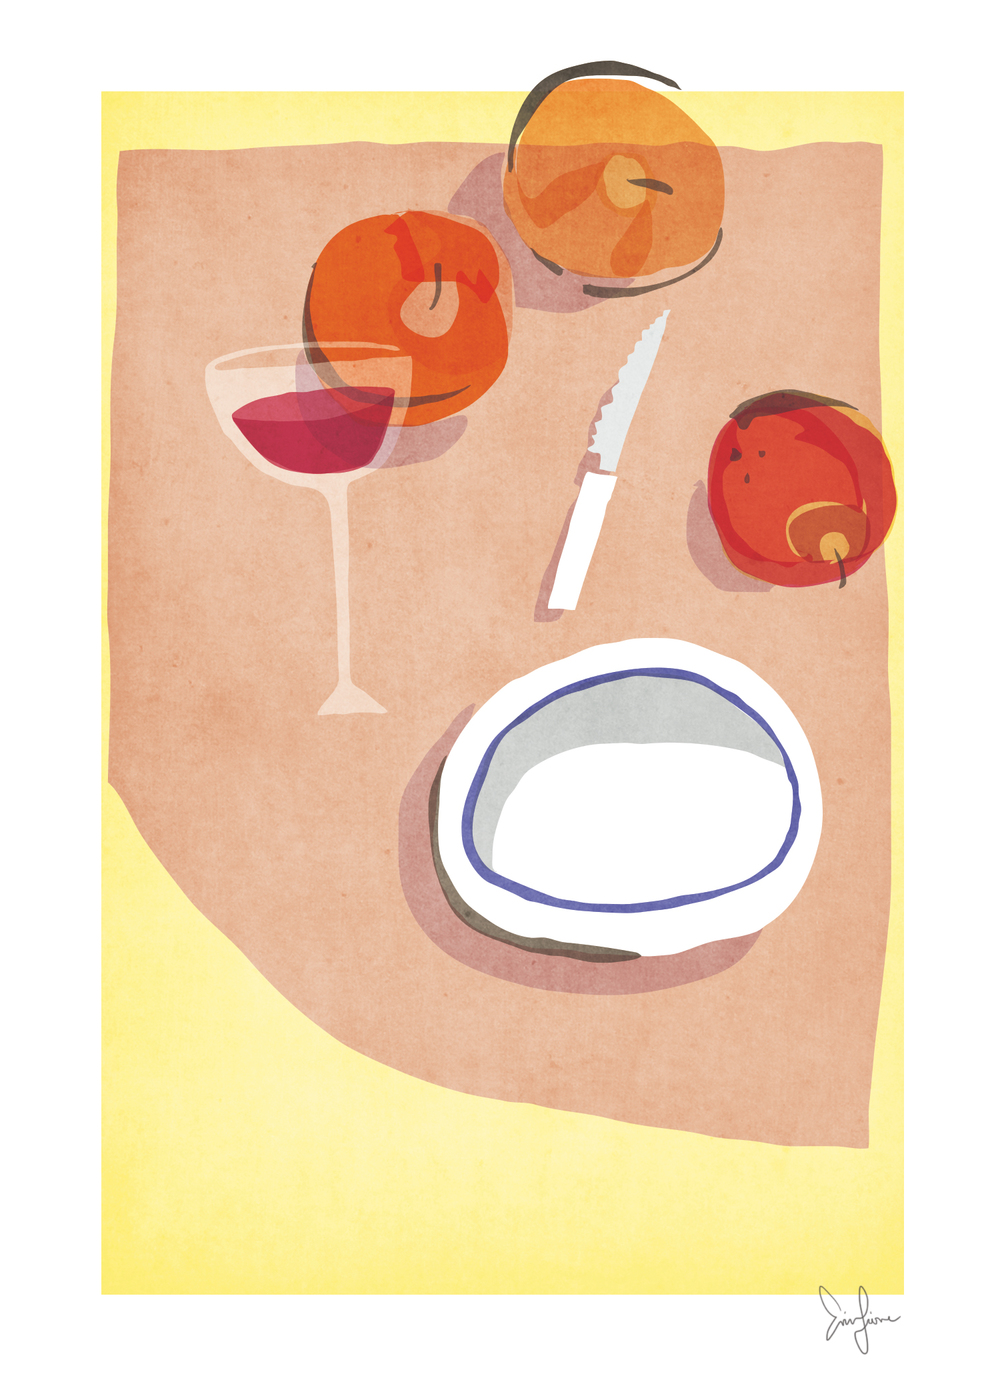 Peaches in my wine: a collection of every day italian experiences, by Erin Fiore | erinfiore.com